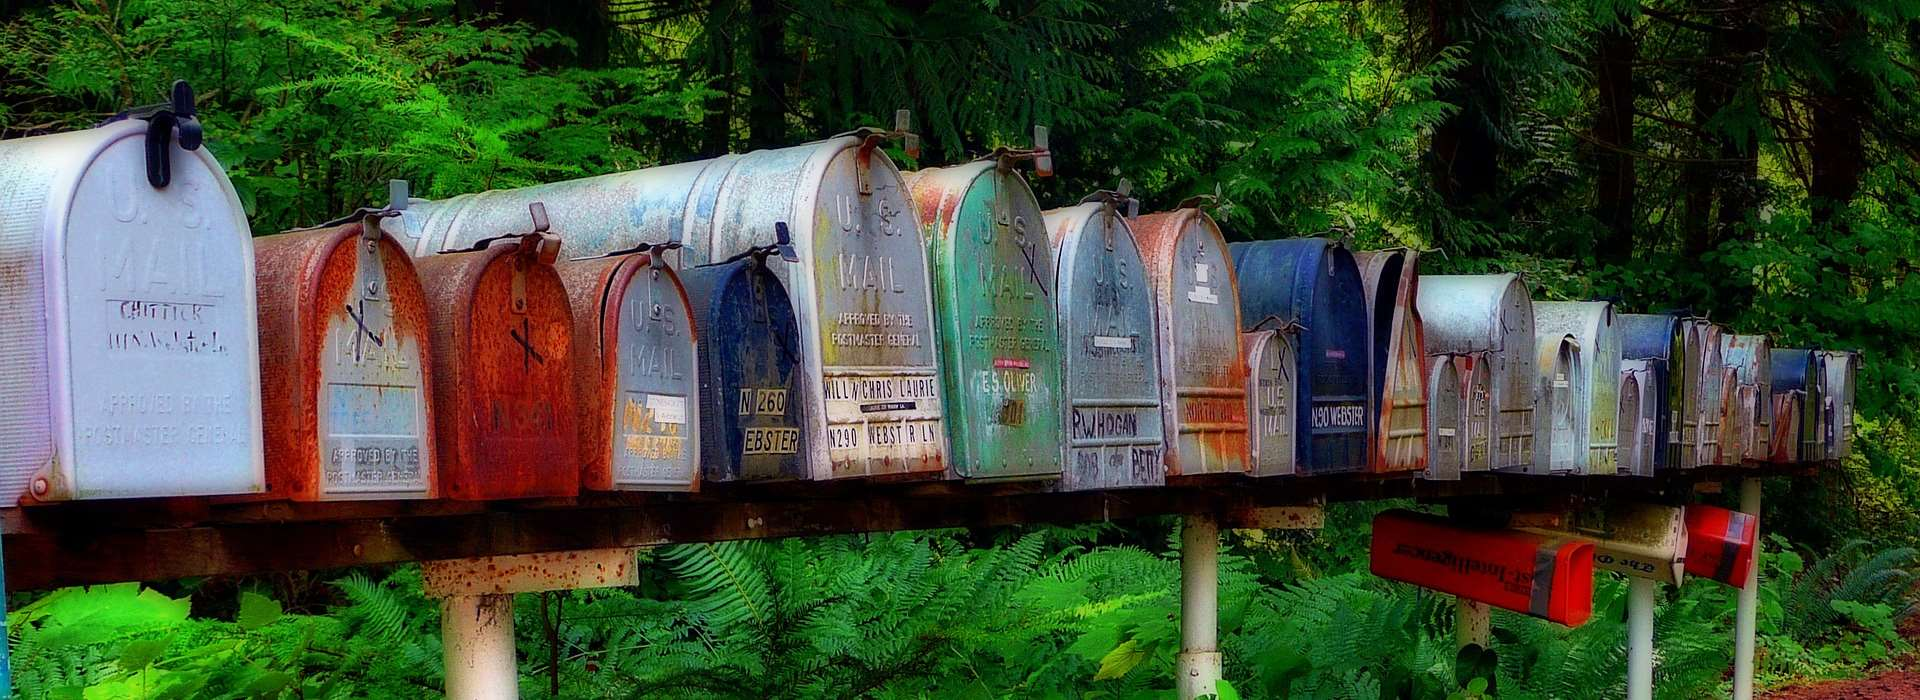 Mailboxes - Shipping